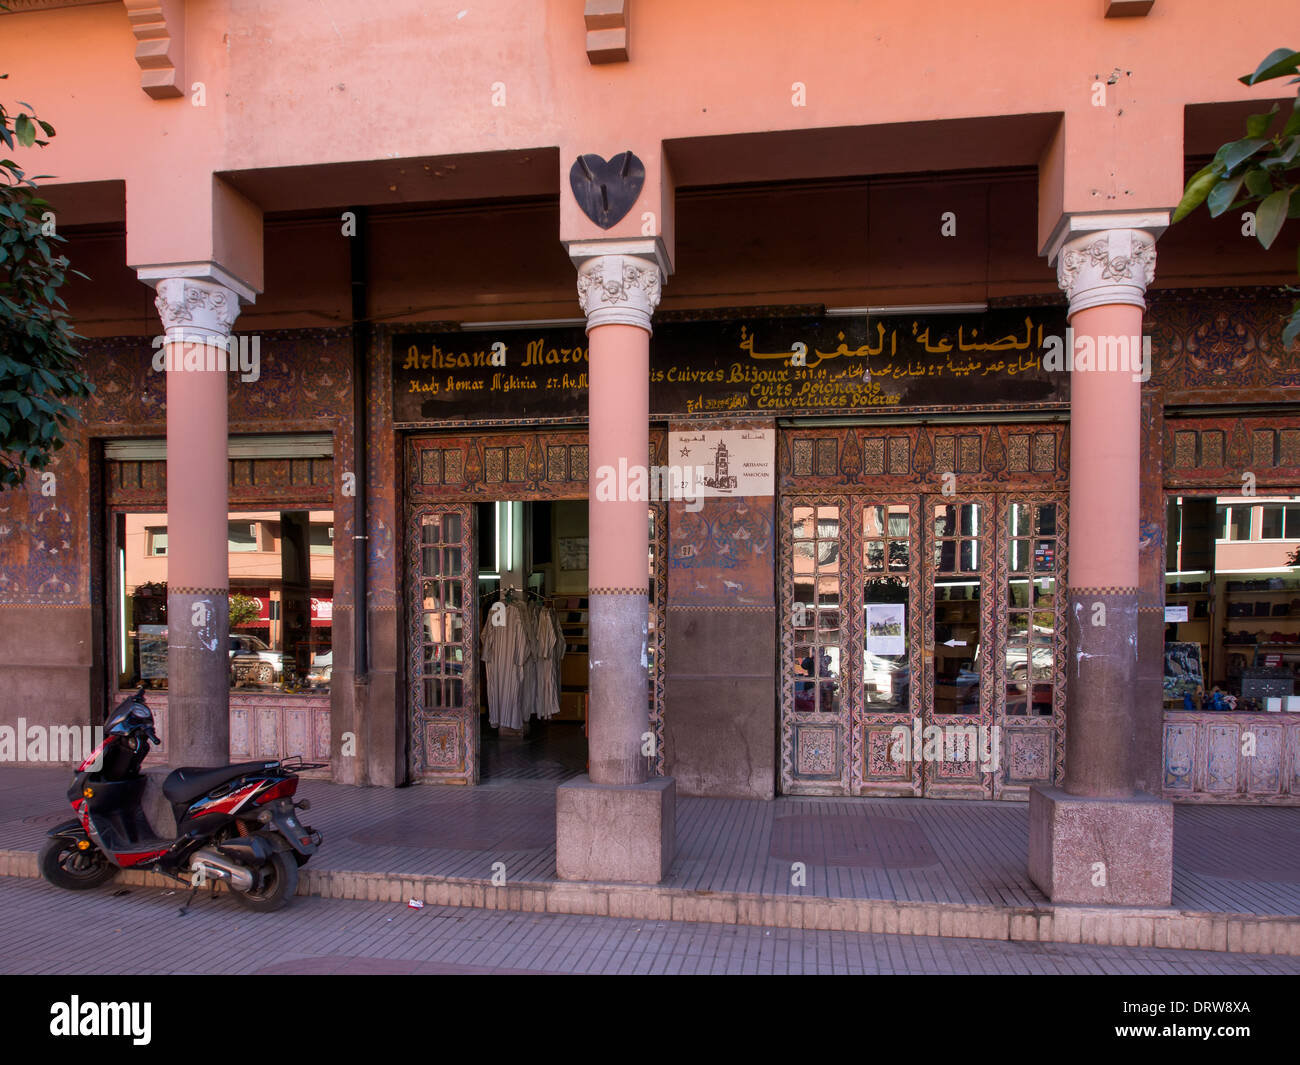 Frontage of shop in the Gueliz District of Marrakech (Marrakesh) - Stock Image